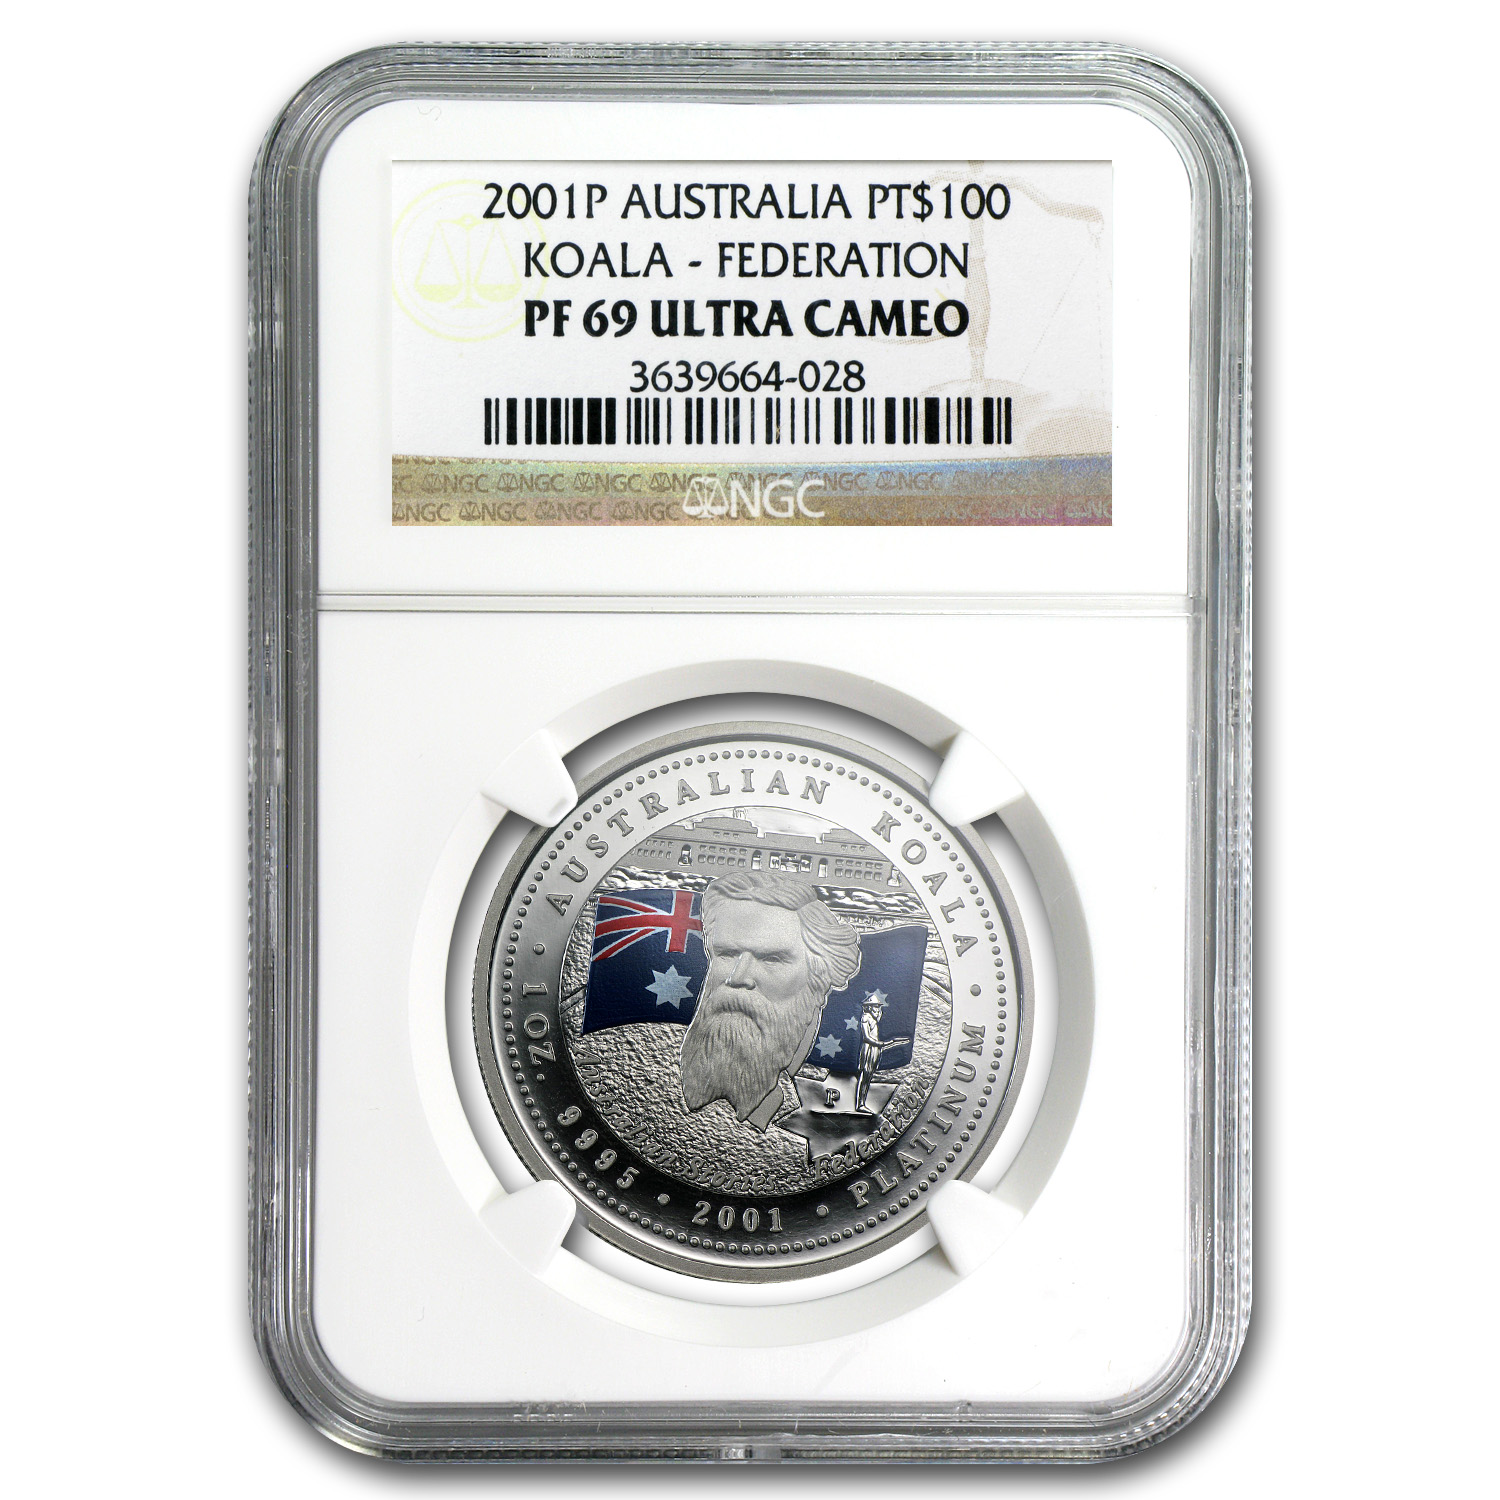 2001 1 oz Proof Australian Platinum Koala PF-69 NGC (Federation)